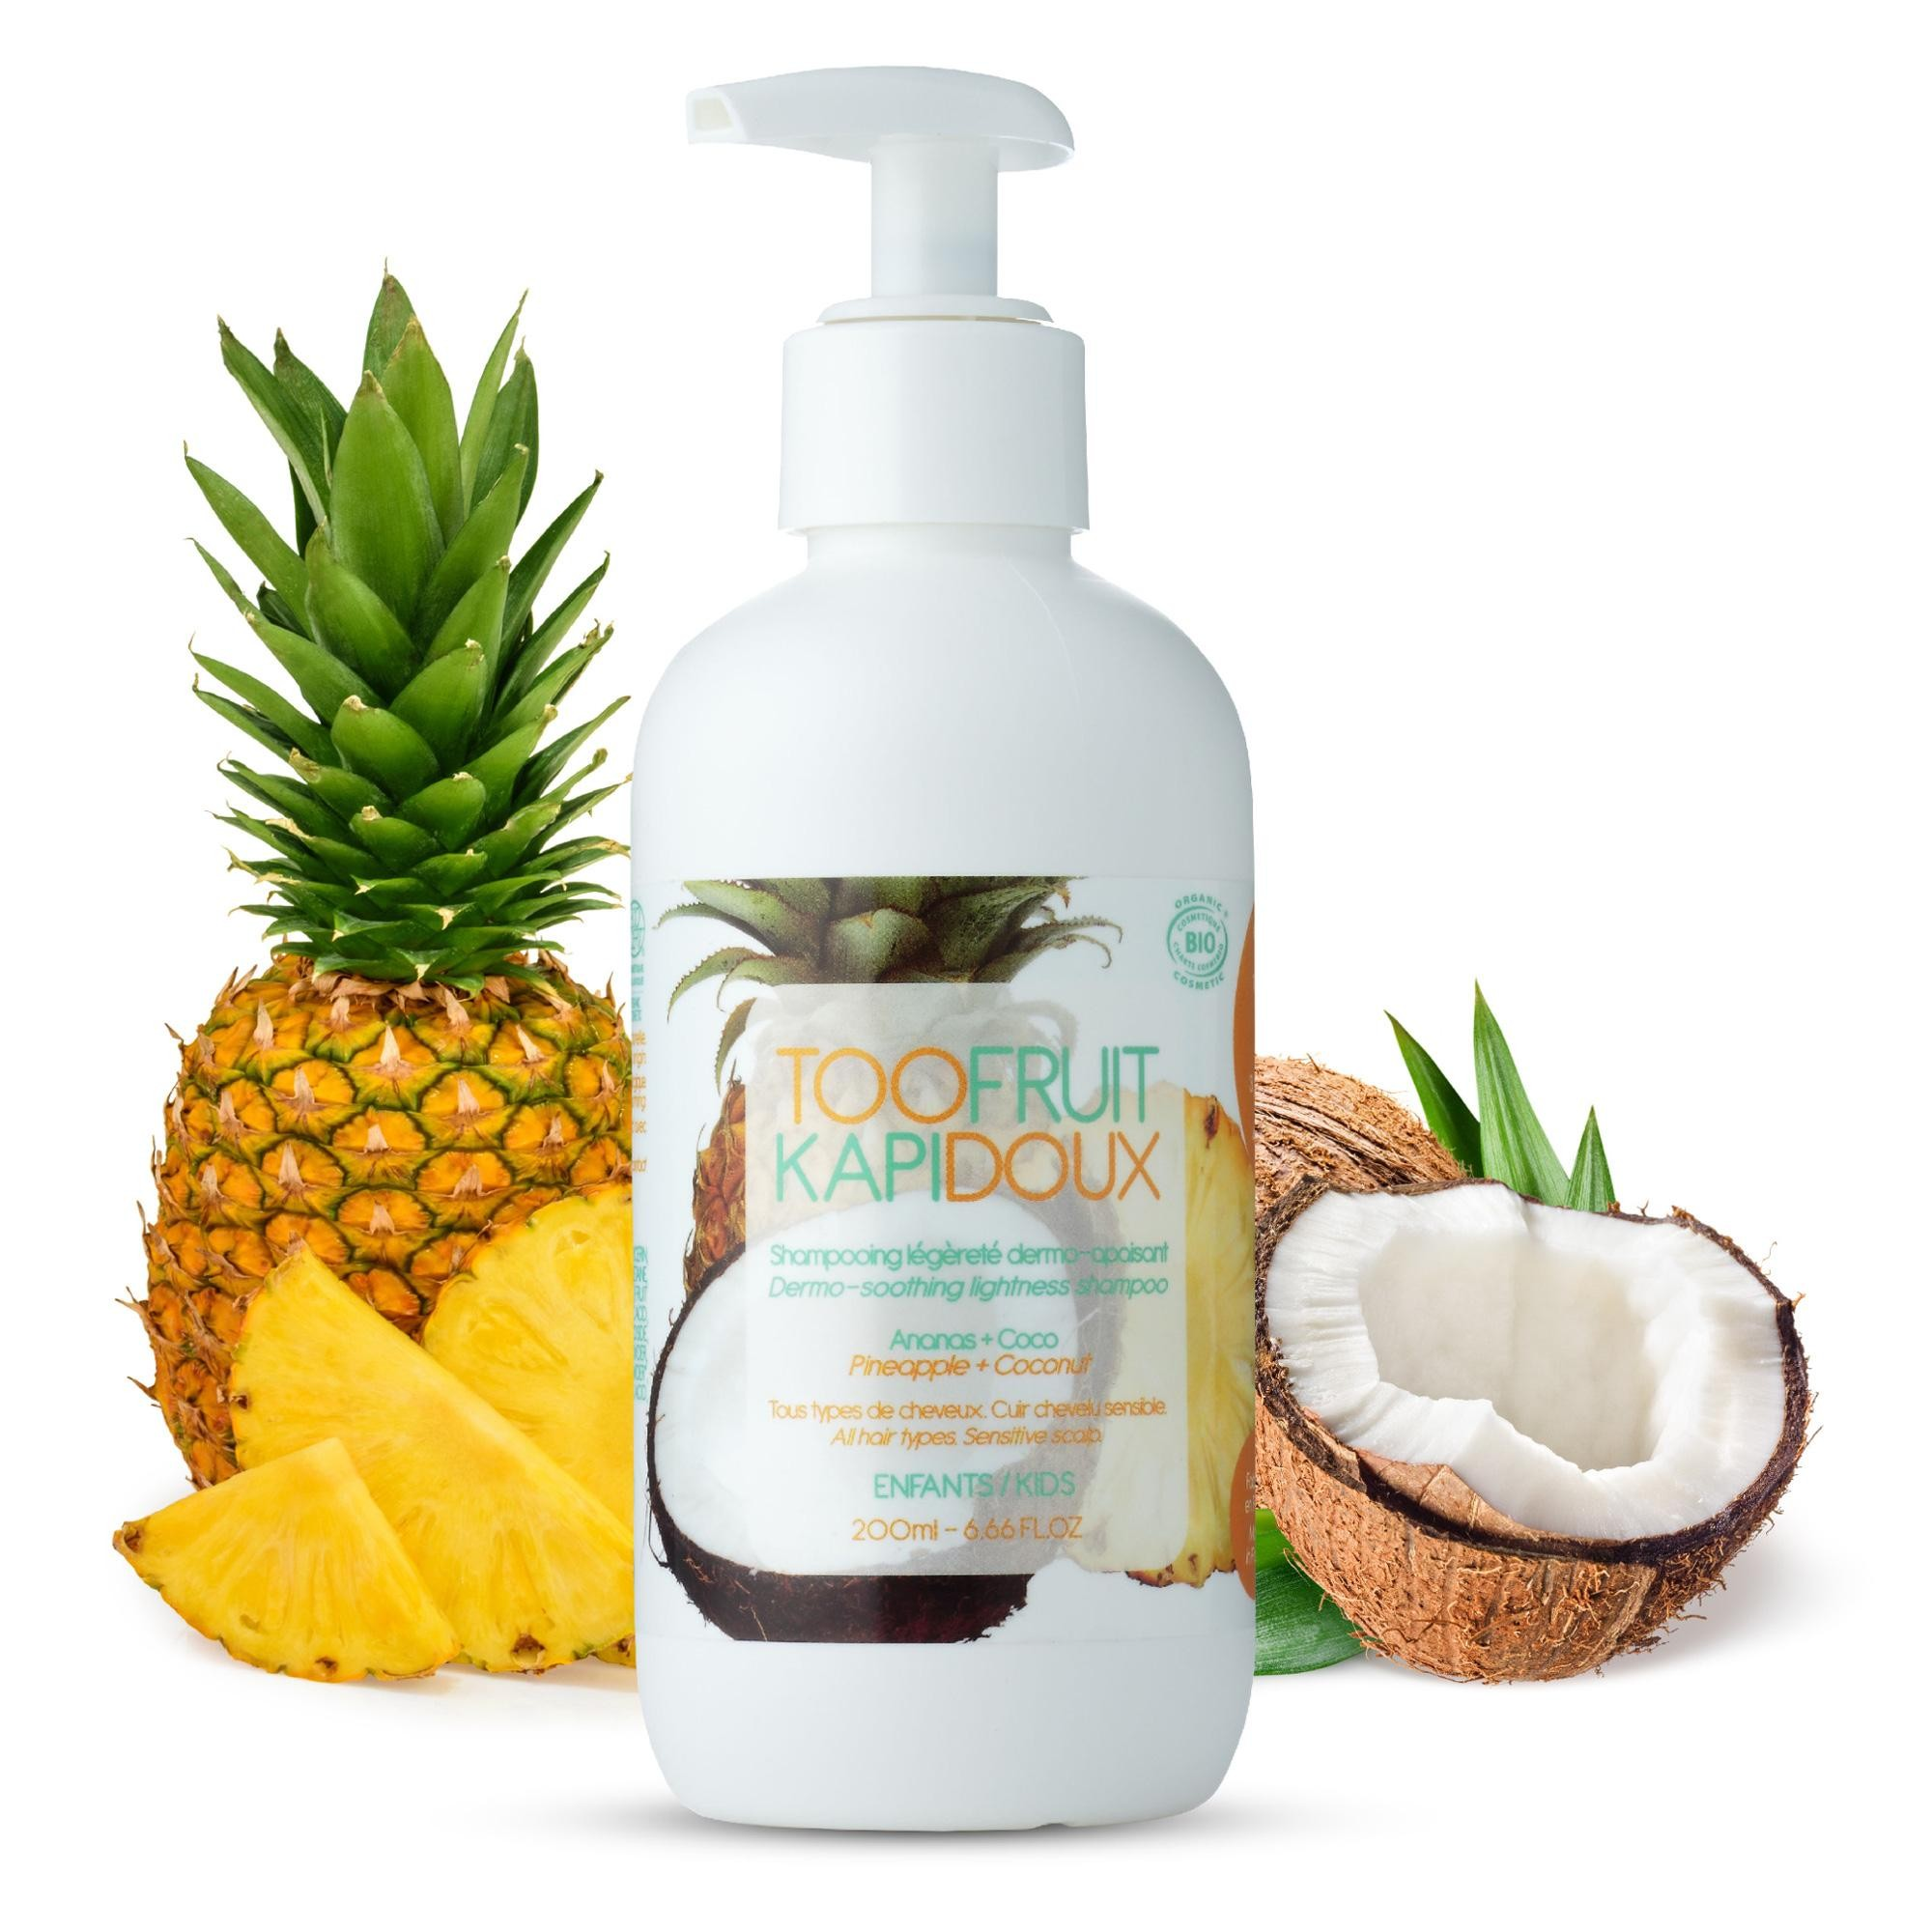 TOOFRUIT - TOOFRUIT SHAMPOOING 200ML - ANANAS COCO